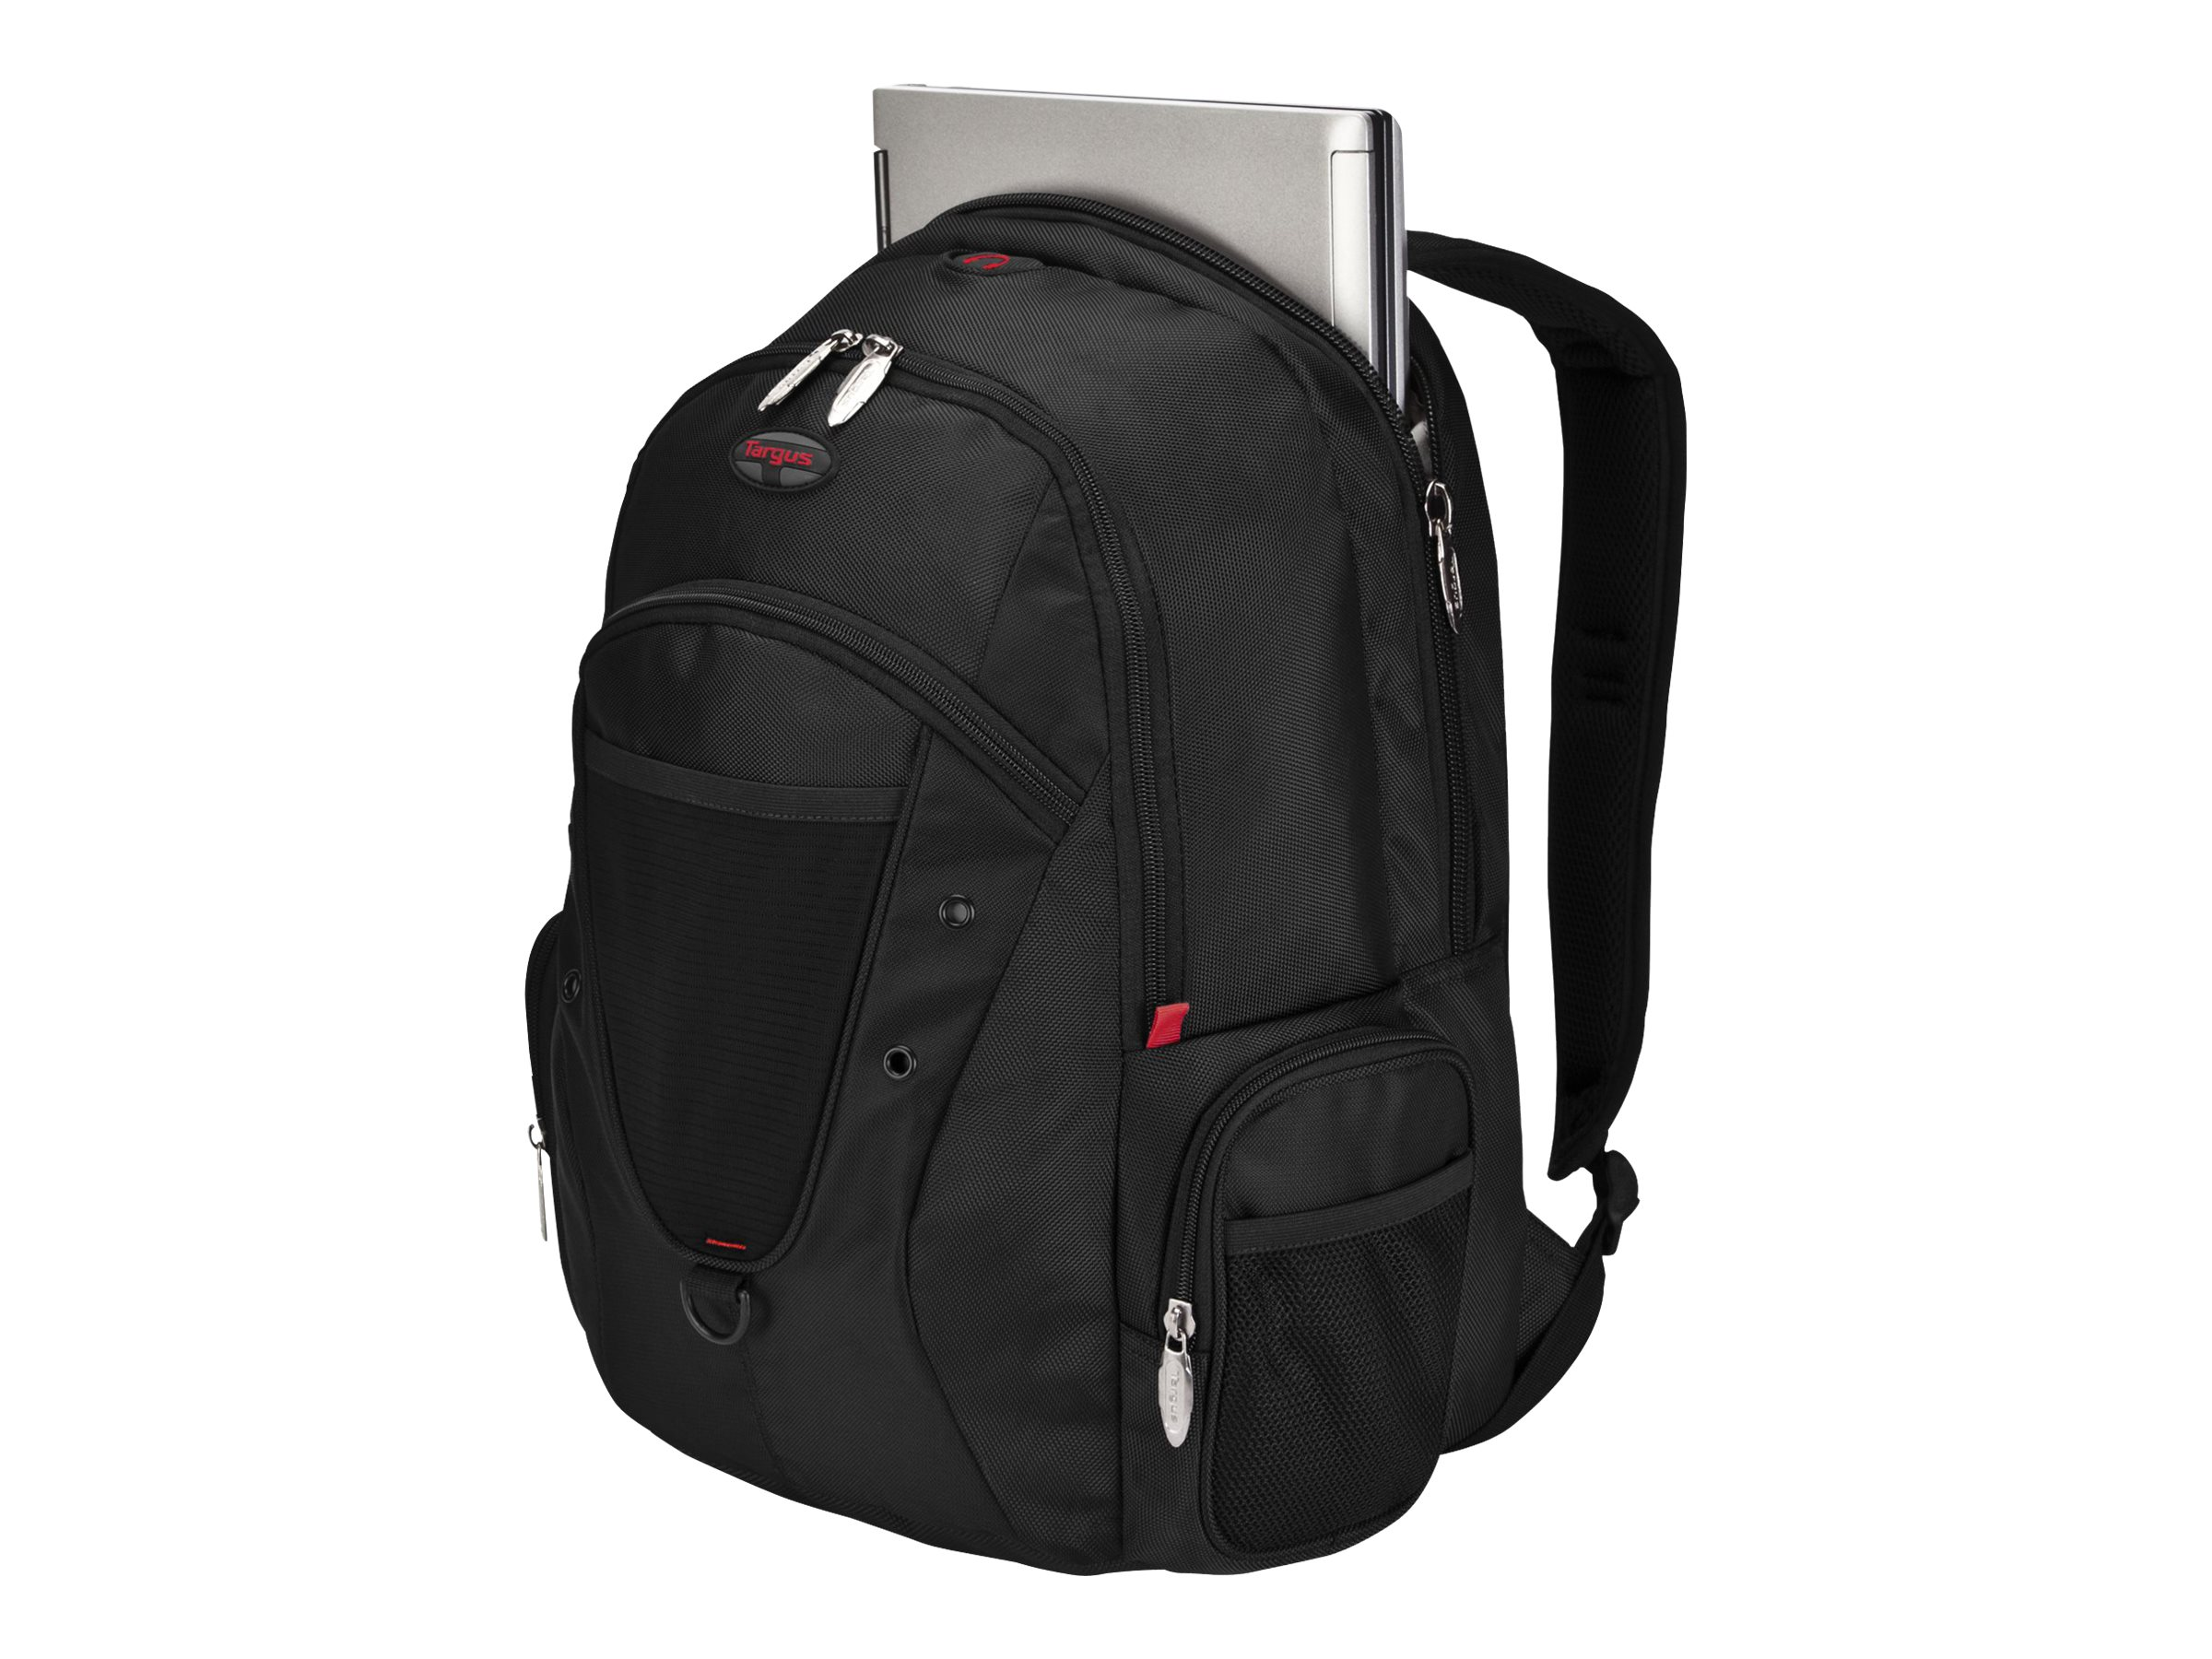 Targus 16 Expedition Backpack, Black Red Accents